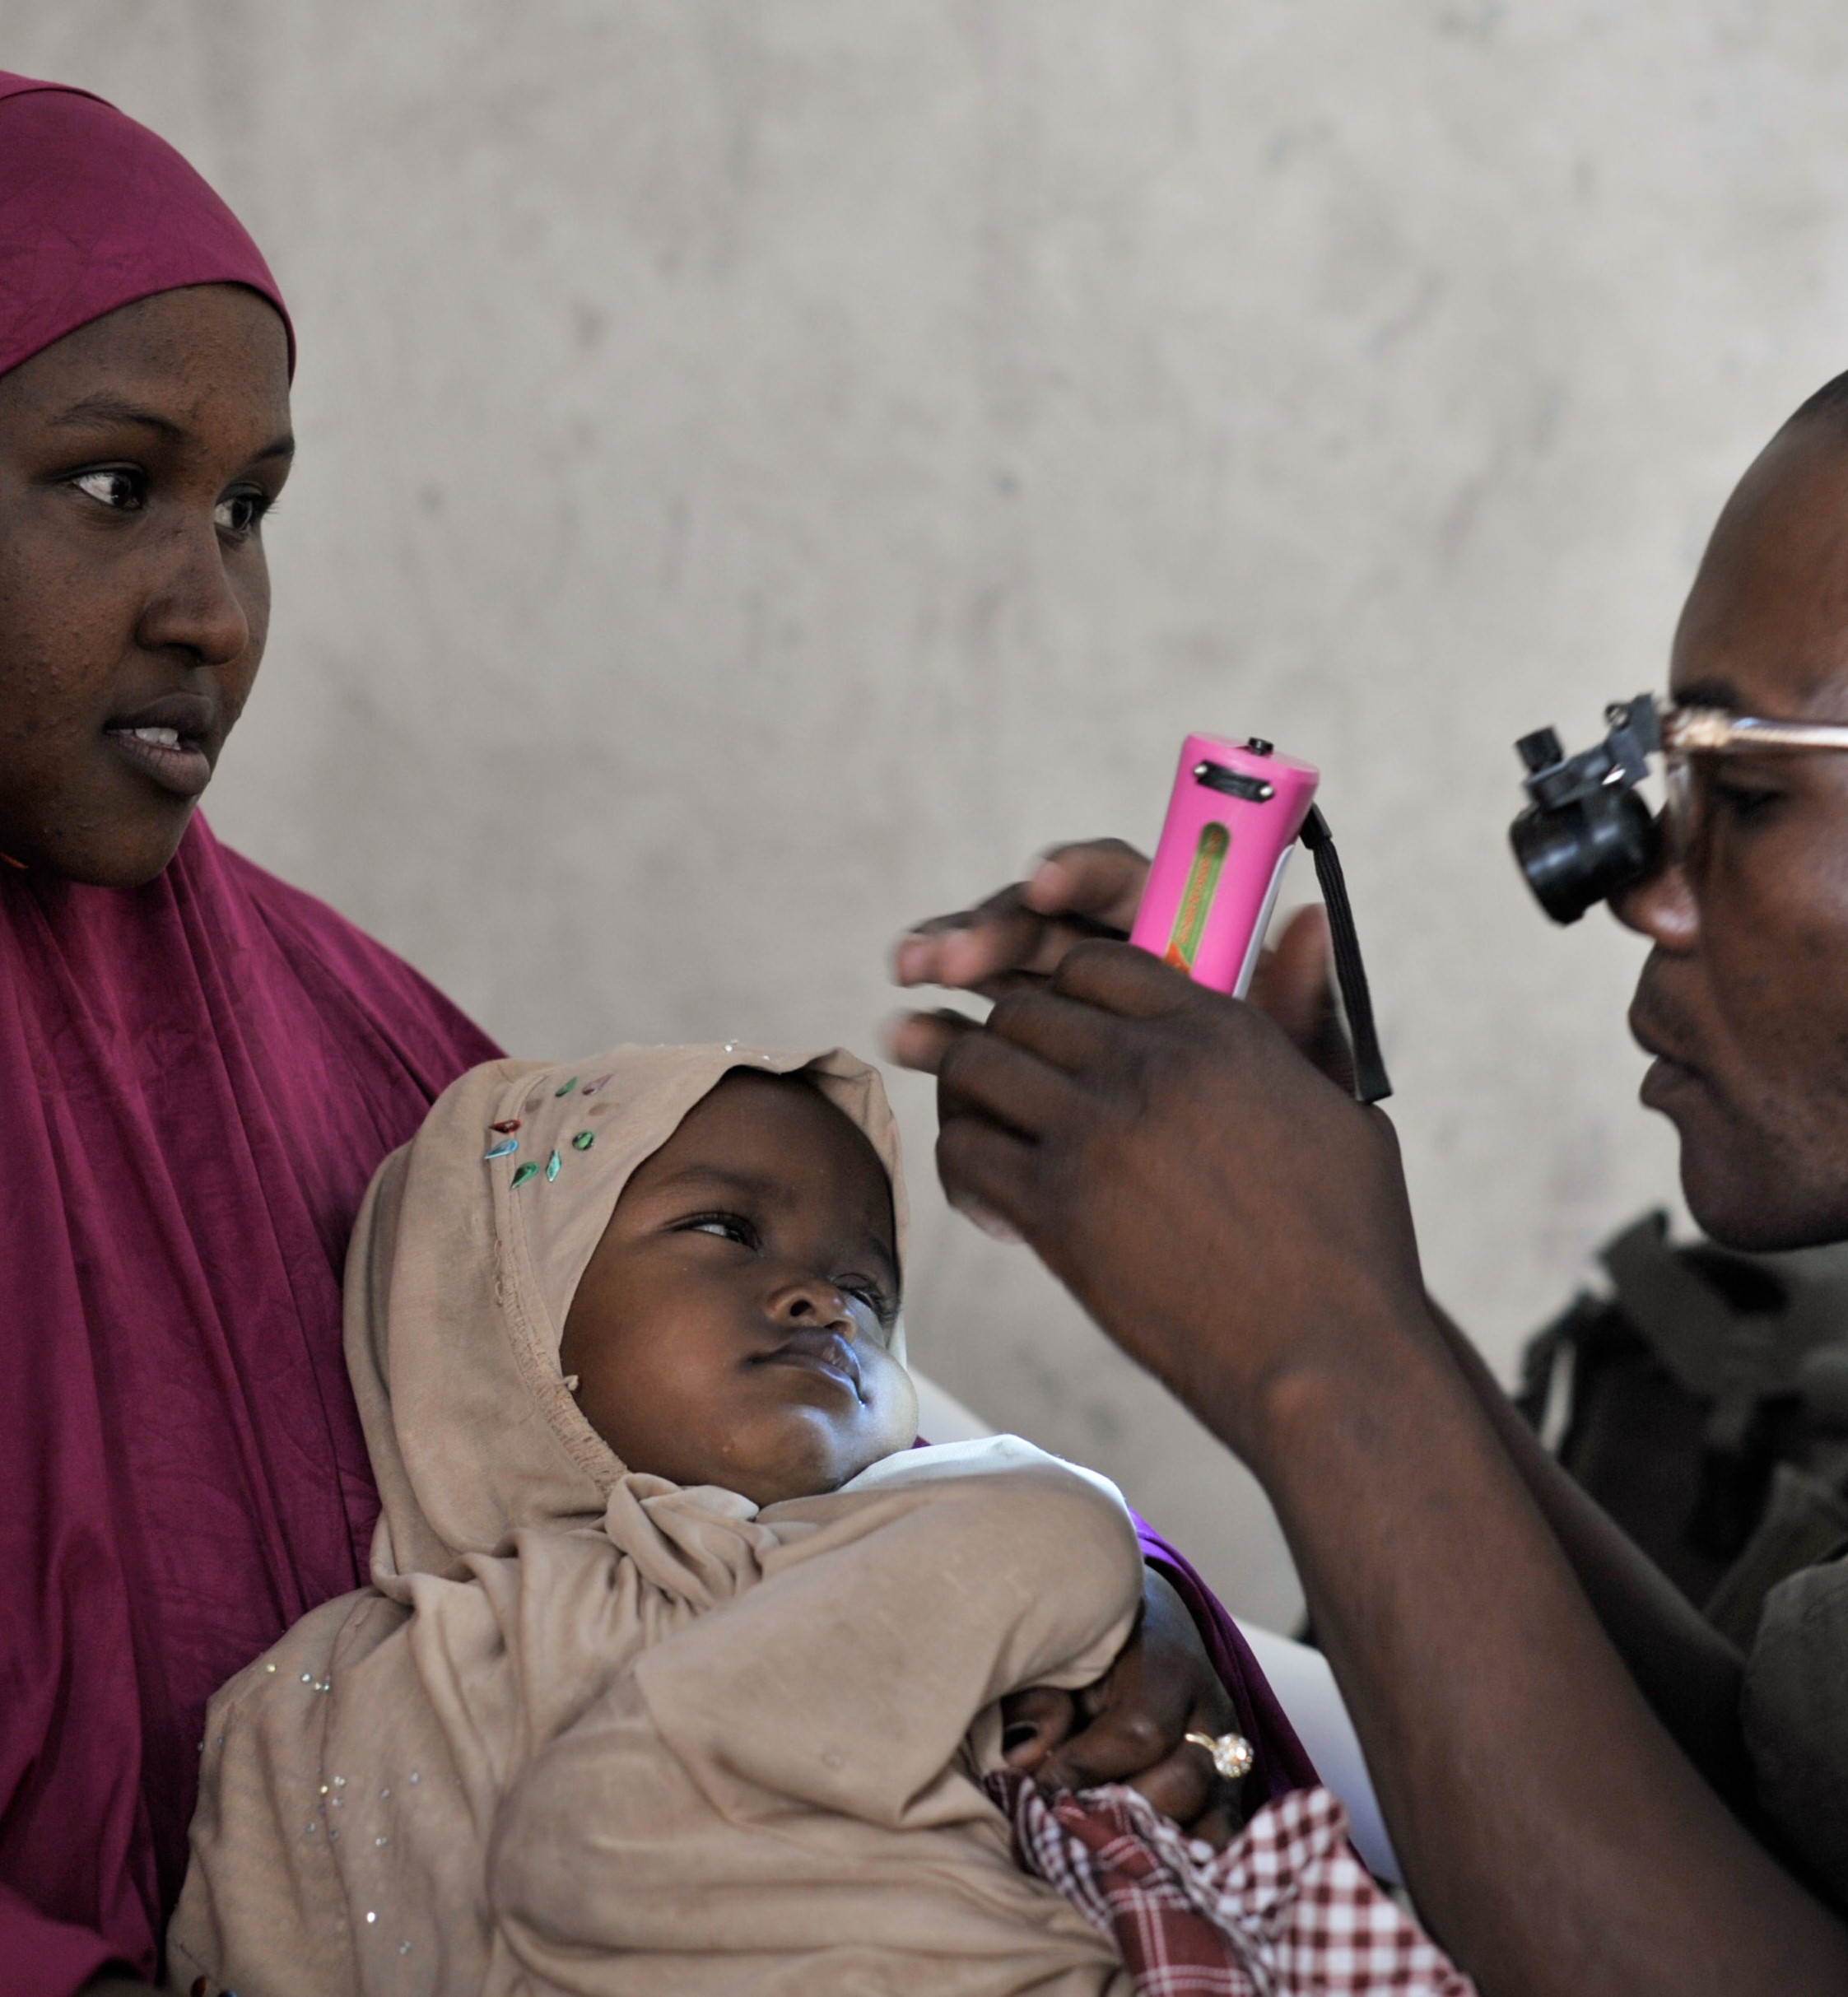 A Ugandan medic, part of the African Union Mission in Somalia (AMISOM), examines a young girl's eyes during an outpatient day for civilians in Mogadishu on December 11. AU UN IST PHOTO / Tobin Jones